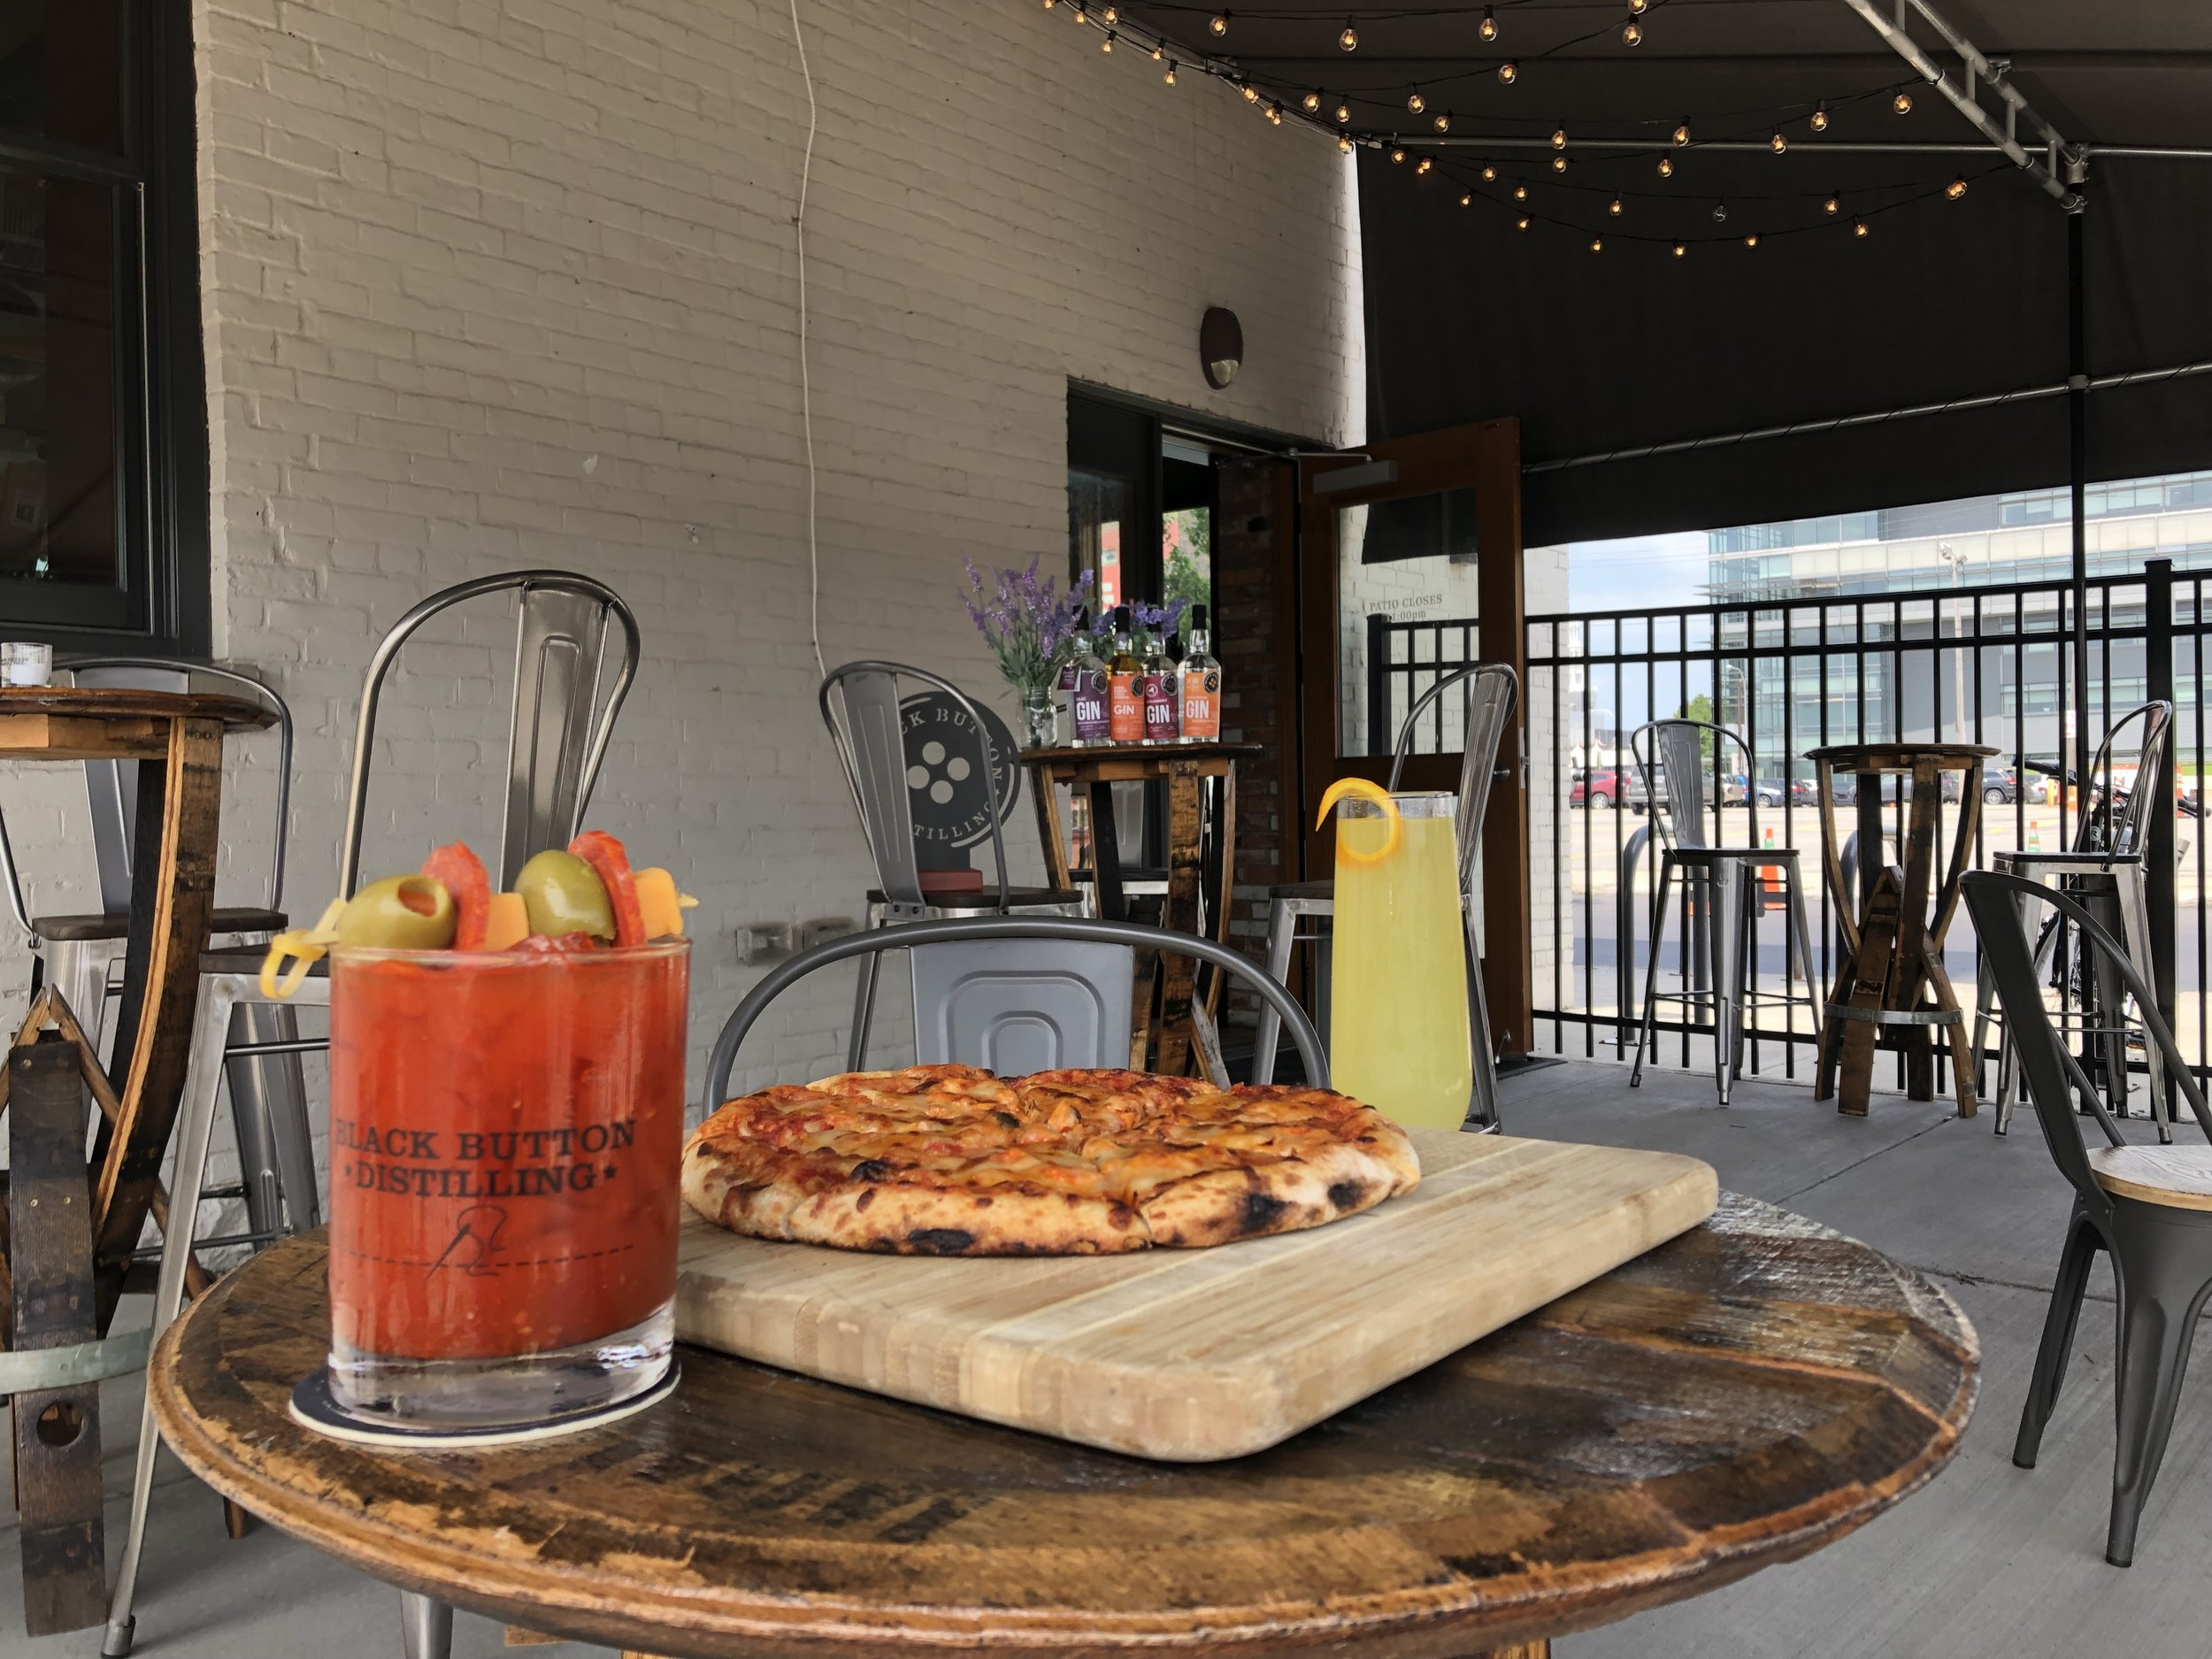 SUNDAY PIZZA BRUNCH FOR TWO - A special built for two, share a delicious brunch pizza while you each sip on a cocktail and get a taste of our Bourbon Cream. You'll also receive a coupon for $5 off any 750mL bottle.The Sunday Brunch special (a $43 value) is just $25 ($30 at the door).